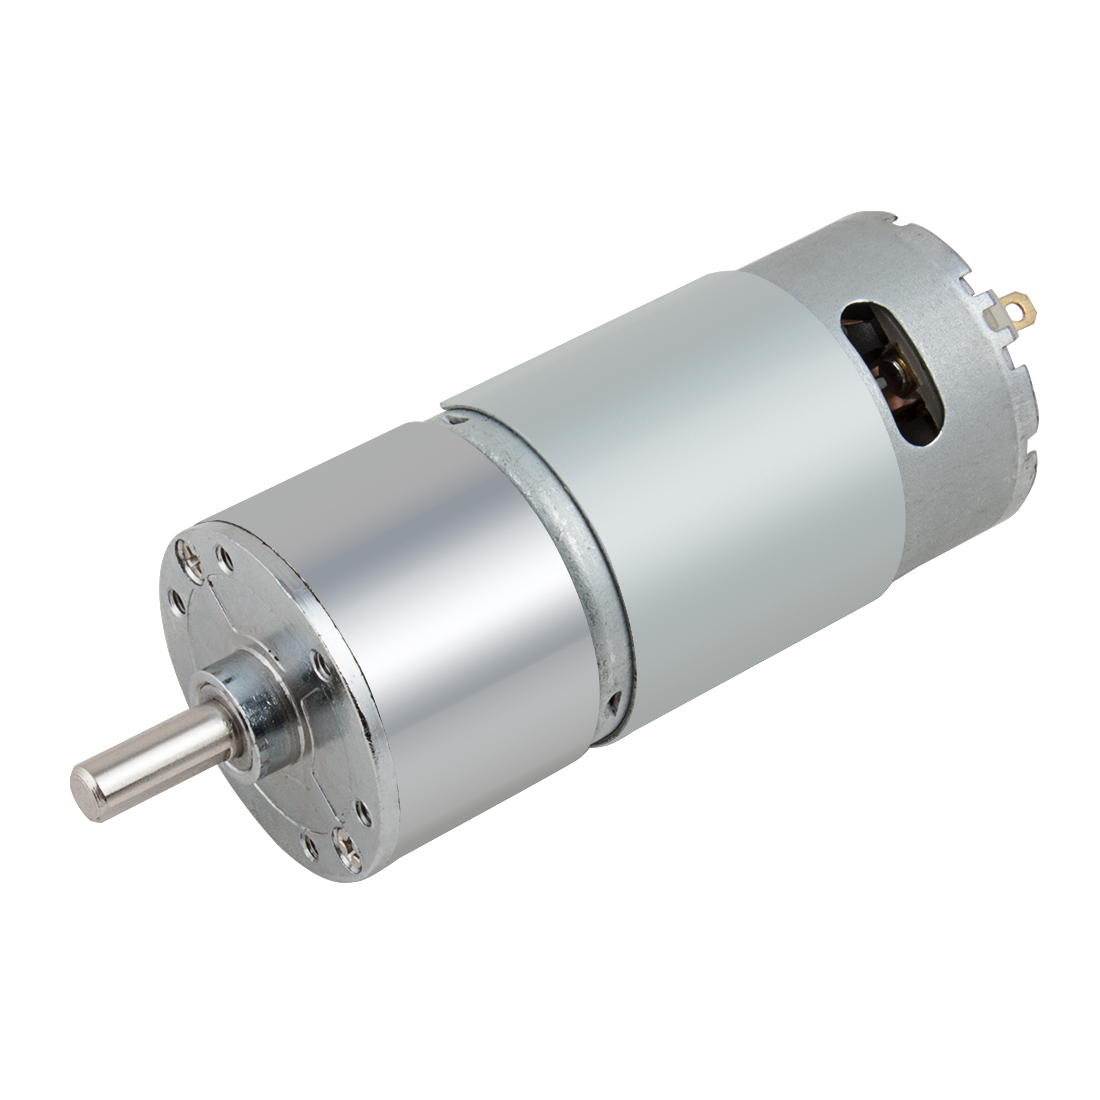 UXCELL 12V 300Rpm Gear Box Motor Speed Reduction Electrical Gearbox Centric Output Shaft 1set k337 3 12v n20 50 300rpm speed reduction gear motor with d type shaft rubber tire trestle diy parts free shipping russia